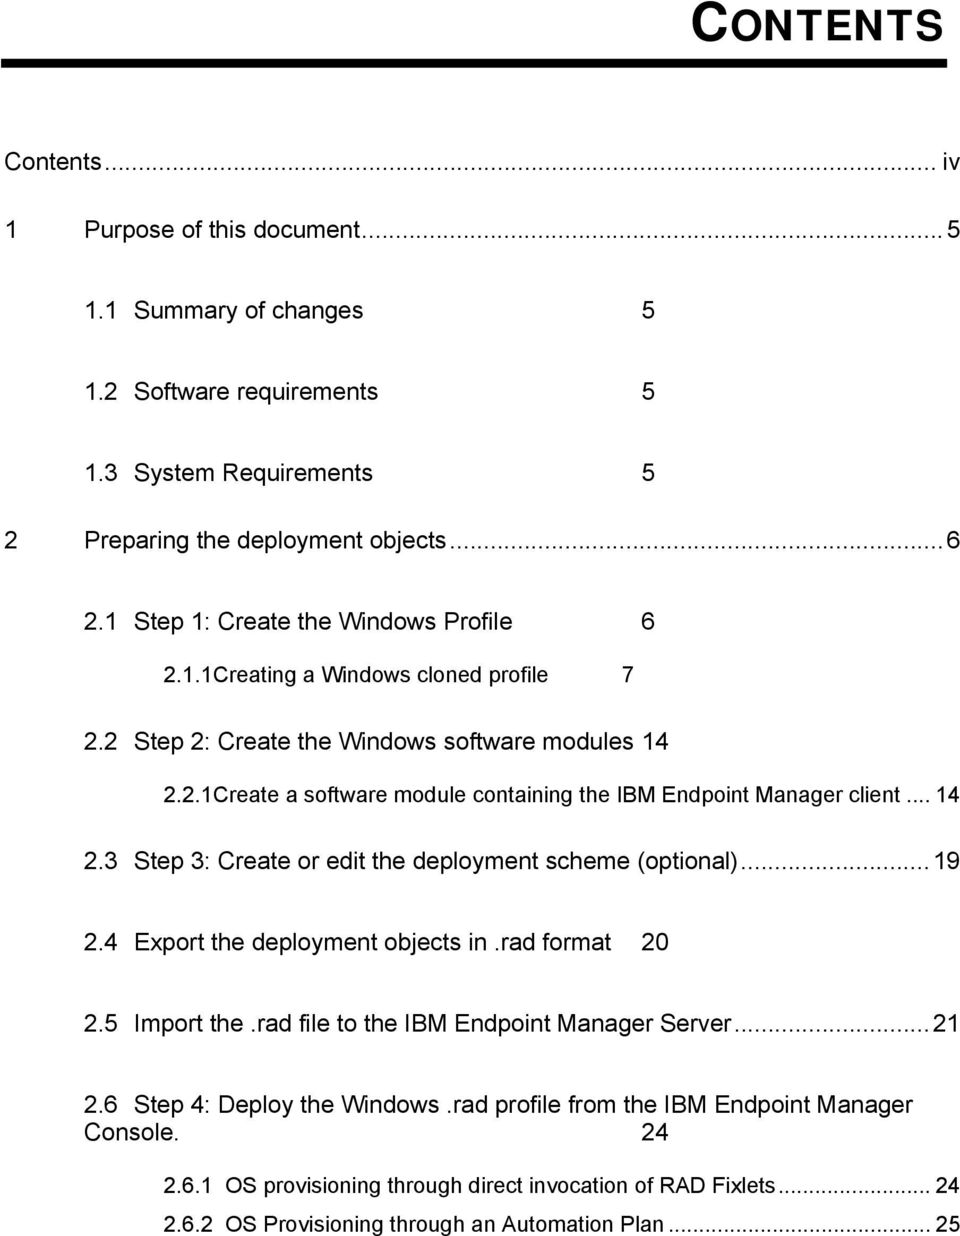 .. 14 2.3 Step 3: Create or edit the deployment scheme (optional)...19 2.4 Export the deployment objects in.rad format 20 2.5 Import the.rad file to the IBM Endpoint Manager Server...21 2.